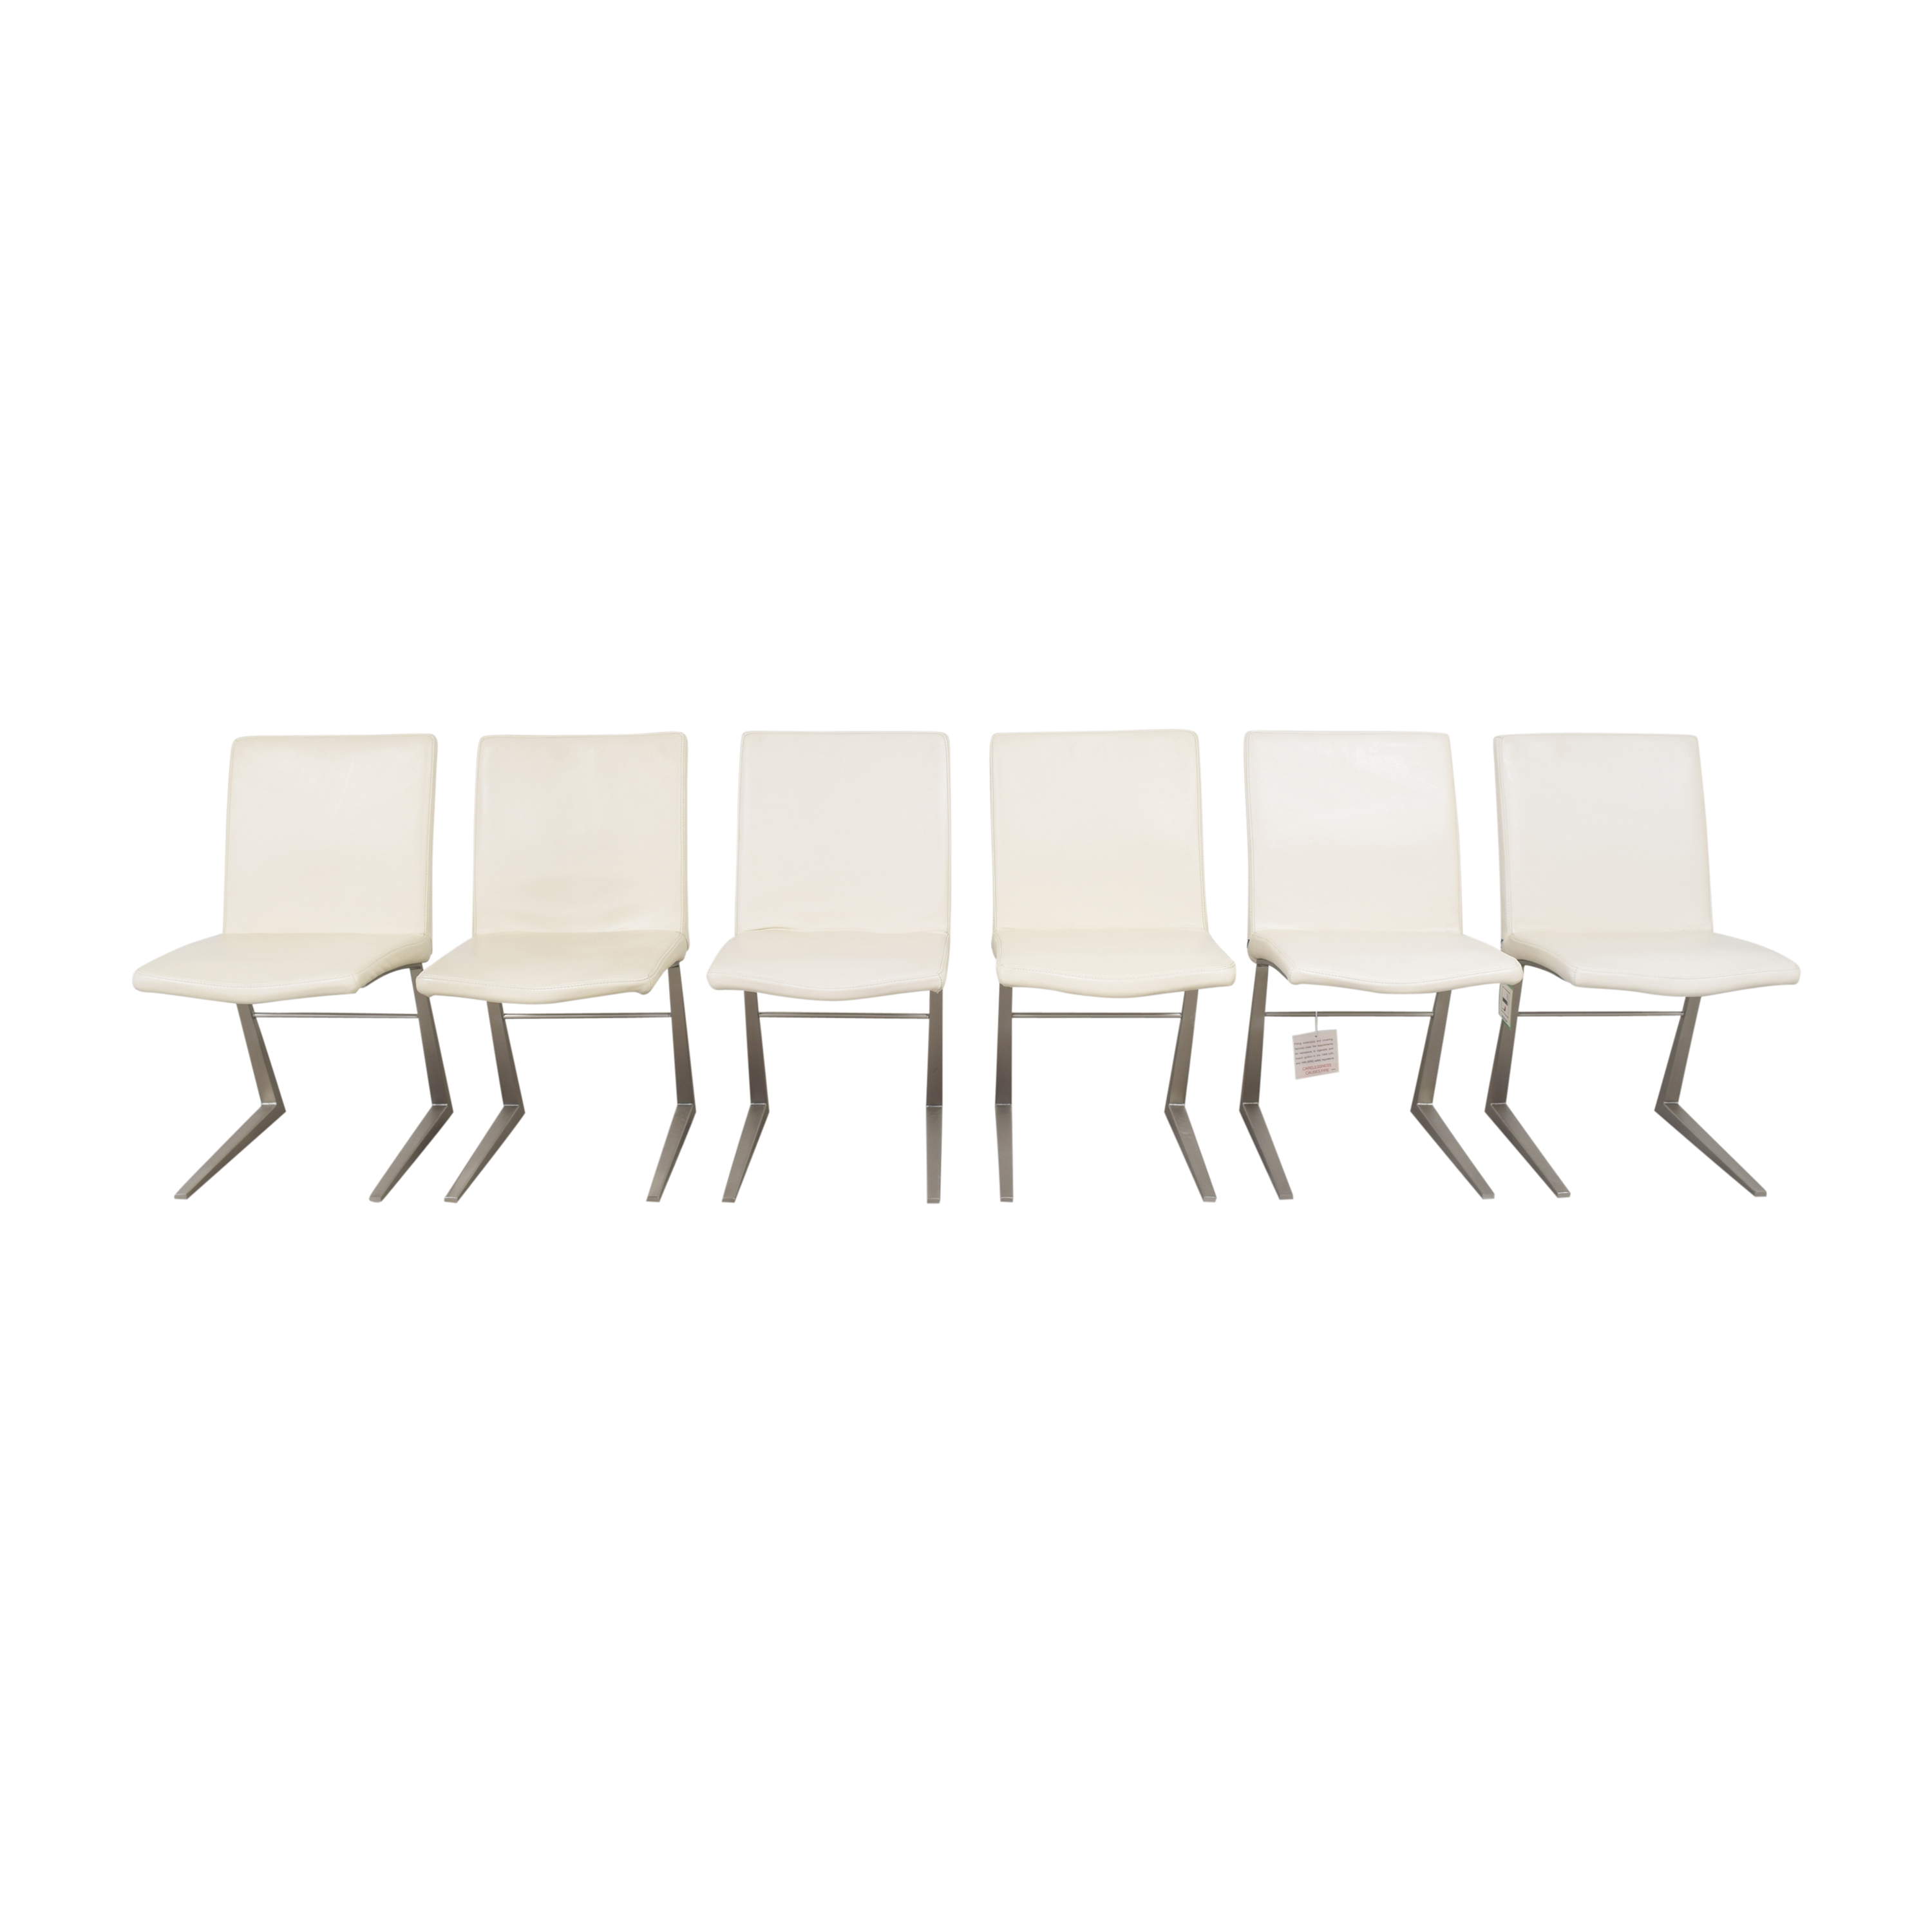 BoConcept BoConcept Mariposa Deluxe Chairs nyc